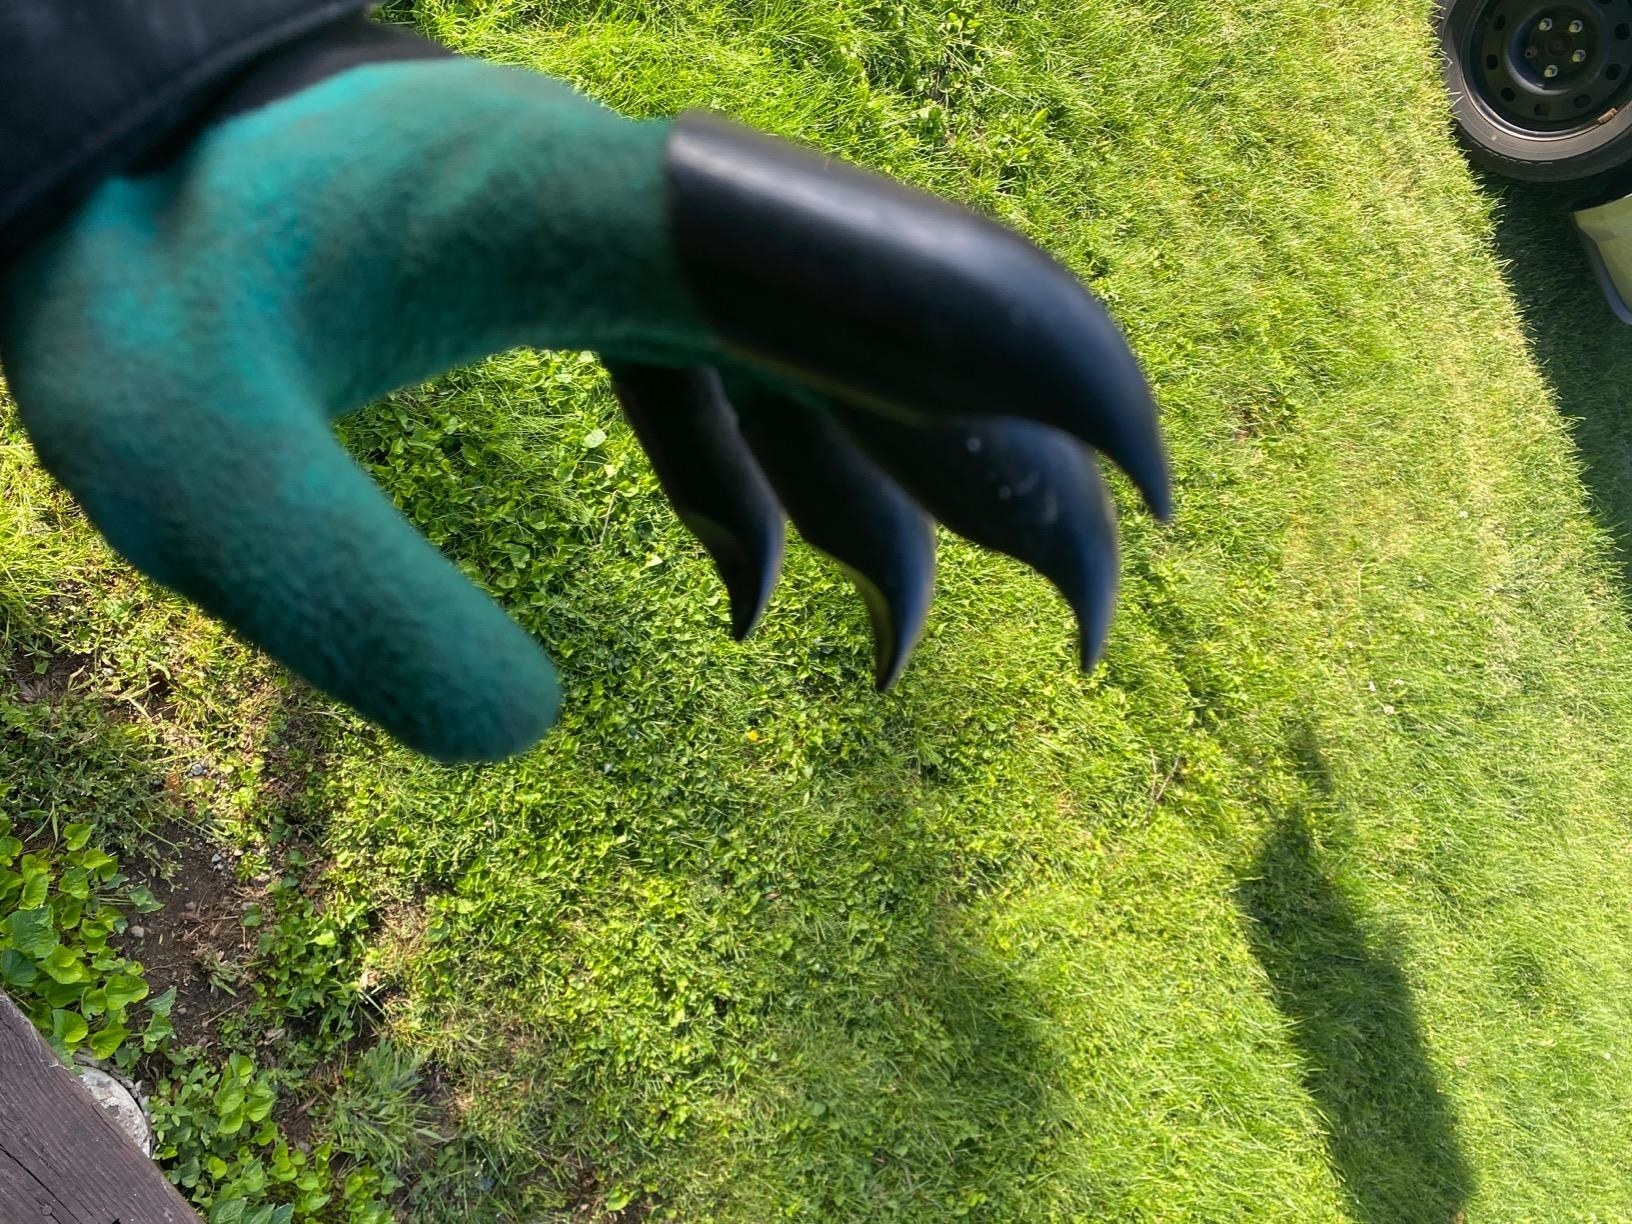 Reviewer using gloves with claws to garden